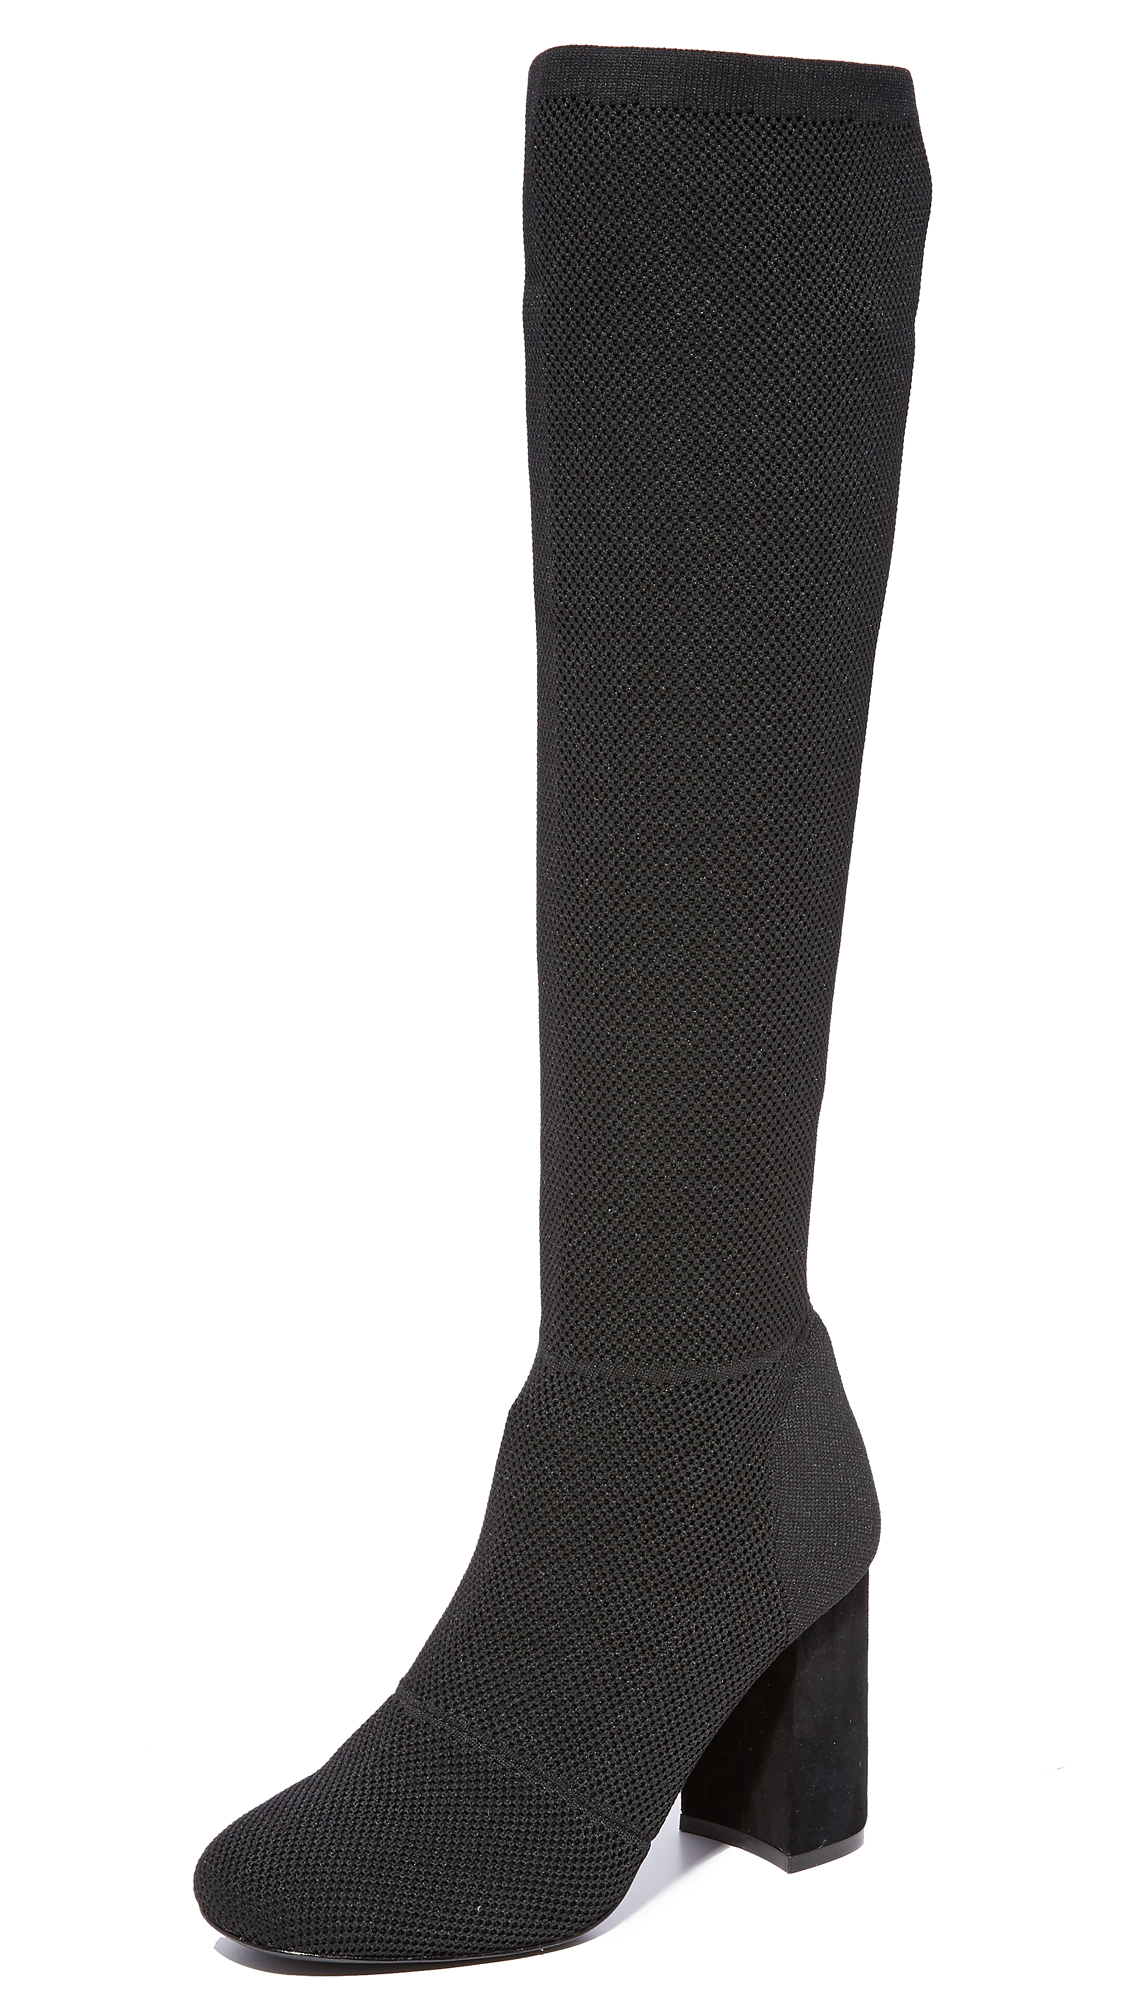 Joie Sam Tall Boots - Black